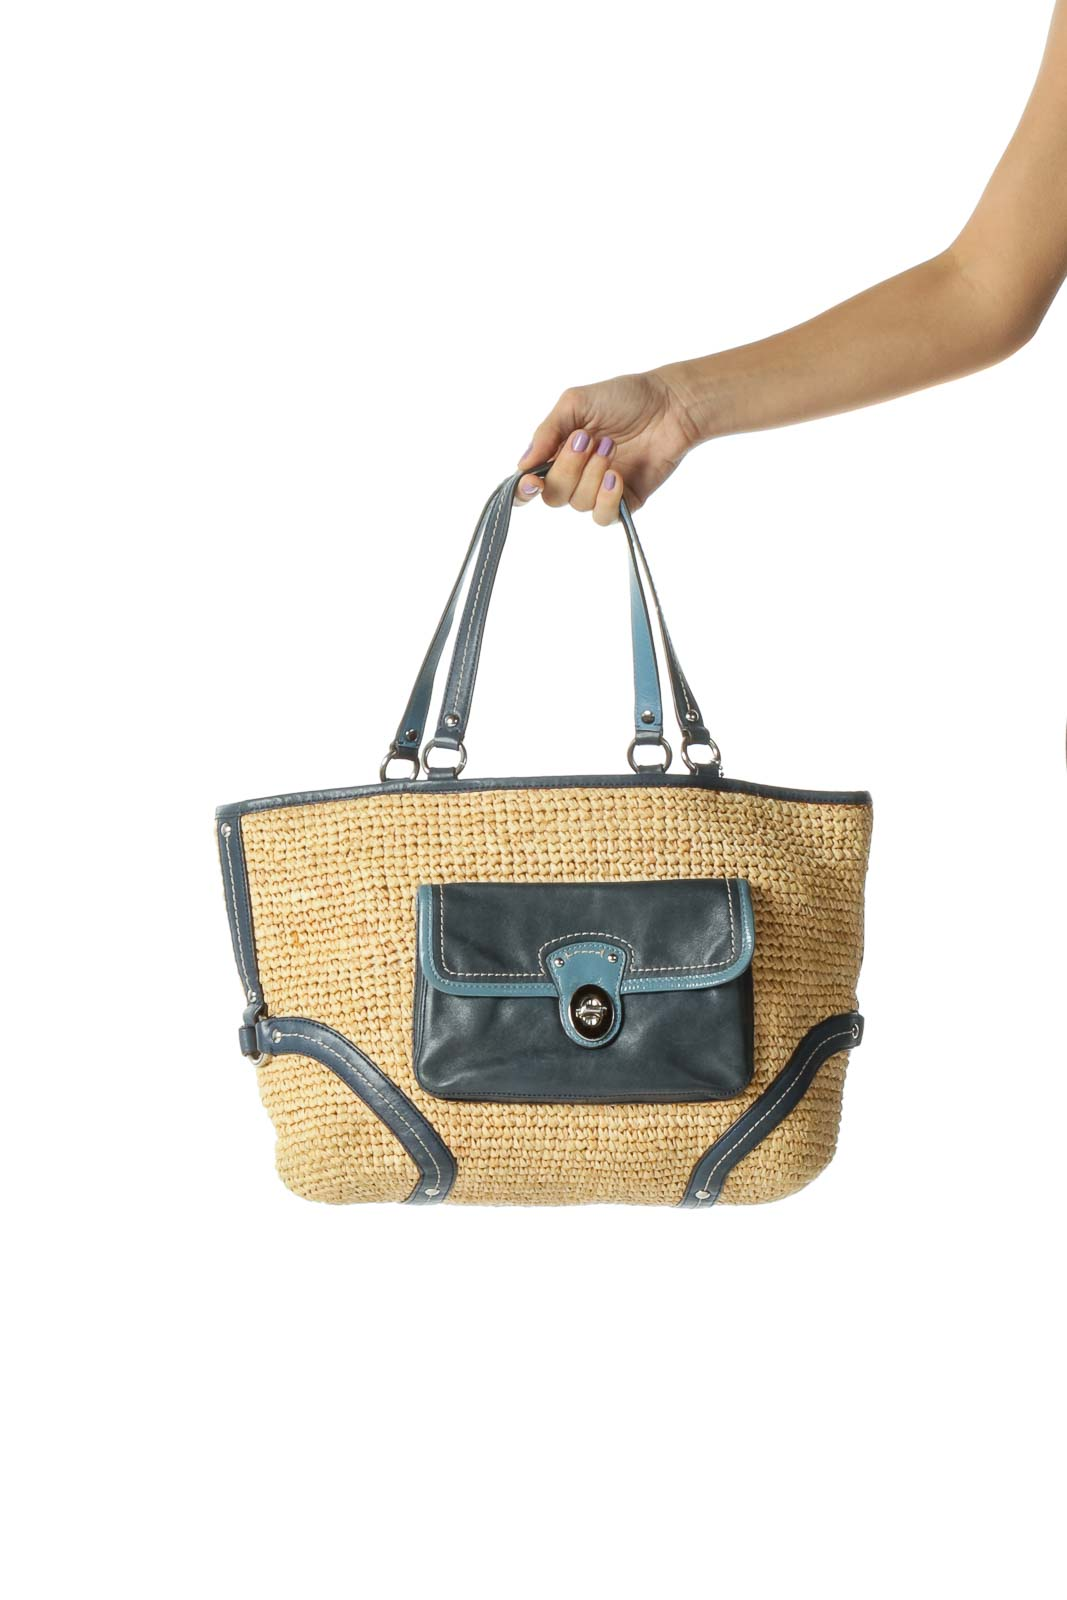 Blue and Brown Woven Straw Tote